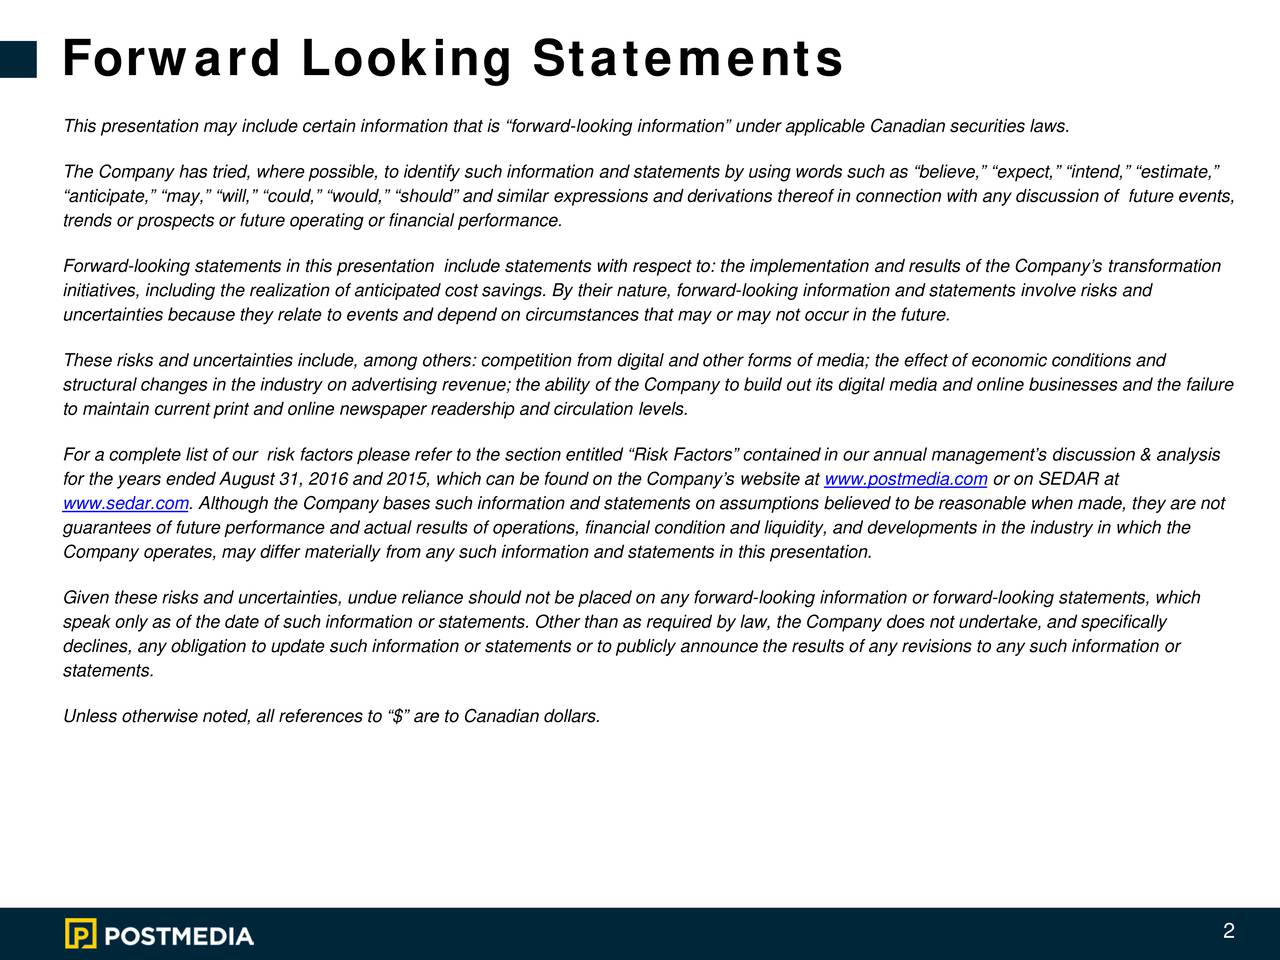 This presentation may include certain information that is forward-looking information under applicable Canadian securities laws. The Company has tried, where possible, to identify such information and statements by using words such as believe, expect, intend, estimate, anticipate, may, will, could, would, should and similar expressions and derivations thereof in conniscussion of future events, trends or prospects or future operating or financial performance. Forward-looking statements in this presentation include statements with respect to:the implementation and results of the Companys transformation initiatives, including the realization of anticipated cost savings. By their nature, forward-looking information and statements involve risks and uncertainties because they relate to events and depend on circumstances that may or may not occur in the future. These risks and uncertainties include, among others: competition from digital and other forms of media; the effect of economic conditions and structural changes in the industry on advertising revenue; the ability of the Company to build out its digital media and online businesses and the failure to maintain current print and online newspaper readership and circulationlevels. For a complete list of our risk factors please refer to the section entitled Risk Factors contained in our annual managements discussion & analysis for the years ended August 31, 2016 and 2015, which can be found on the Companys website atwww.postmedia.com or on SEDAR at www.sedar.com. Although the Company bases such information and statements on assumptions believed to be reasonable when made, they are not guarantees of future performance and actual results of operations, financial condition and liquidity, and developments in theindustry in which the Company operates, may differ materially from any such information and statements in this presentation. Given these risks and uncertainties, undue reliance should not be placed on any forward-looking information or forward-looking statements, which speak only as of the date of such information or statements. Other than as requiredby law, the Company does not undertake, and specifically declines, any obligation to update such information or statements or to publicly announce the results of any revisions to any such informationor statements. Unless otherwise noted, all references to $ are to Canadian dollars. 2